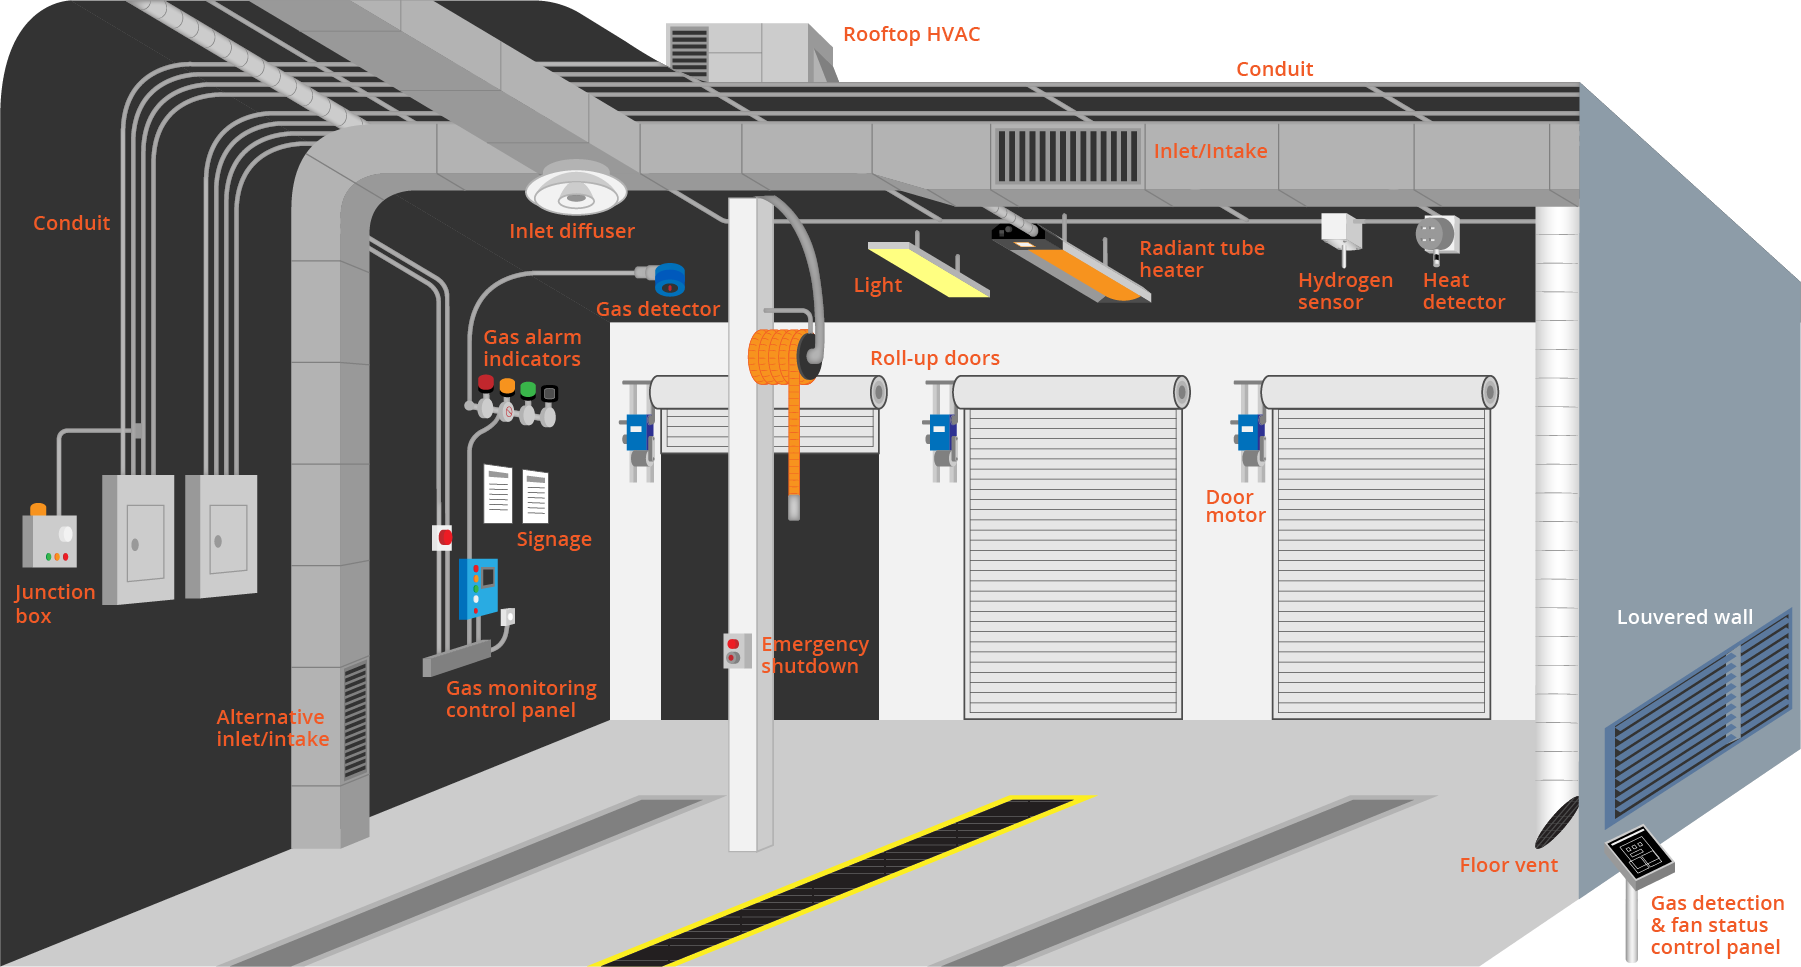 Alternate Fuel Garage Maintenance Facility General Diagram - Natural Gas, Propane, and Hydrogen fuels